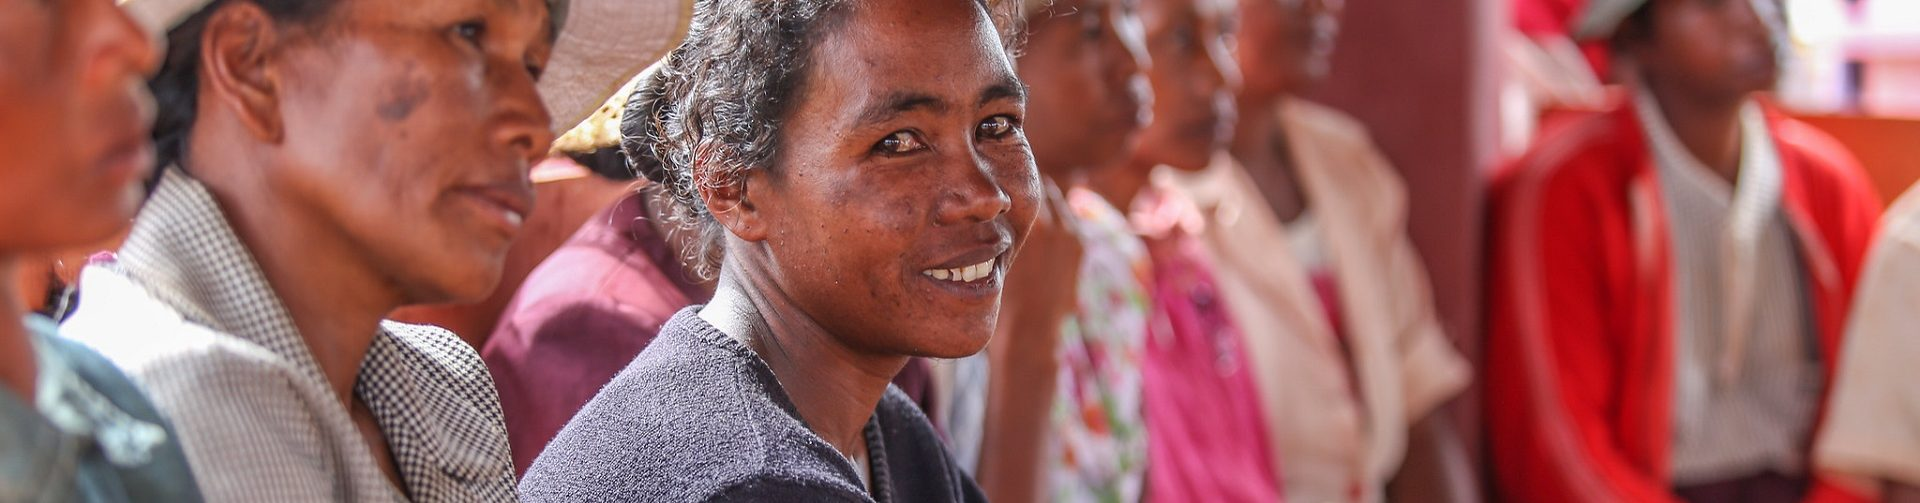 Toward gender equality in social protection. Evidence gaps and priority research questions